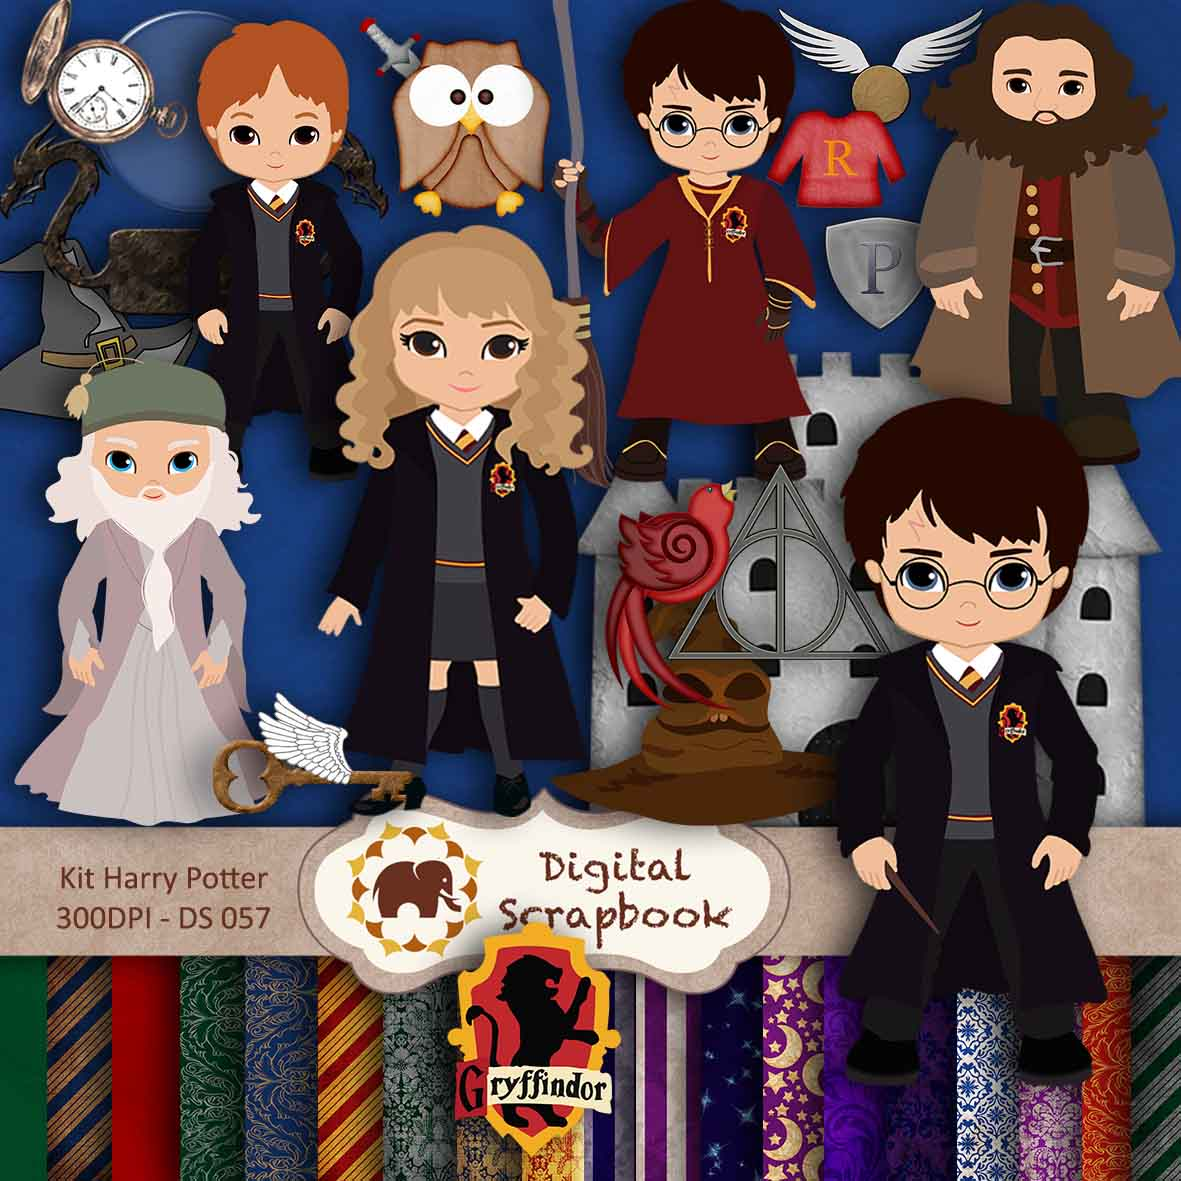 Cute Animated Dolls Wallpapers Kit Scrapbook Digital Harry Potter Digital Scrapbook